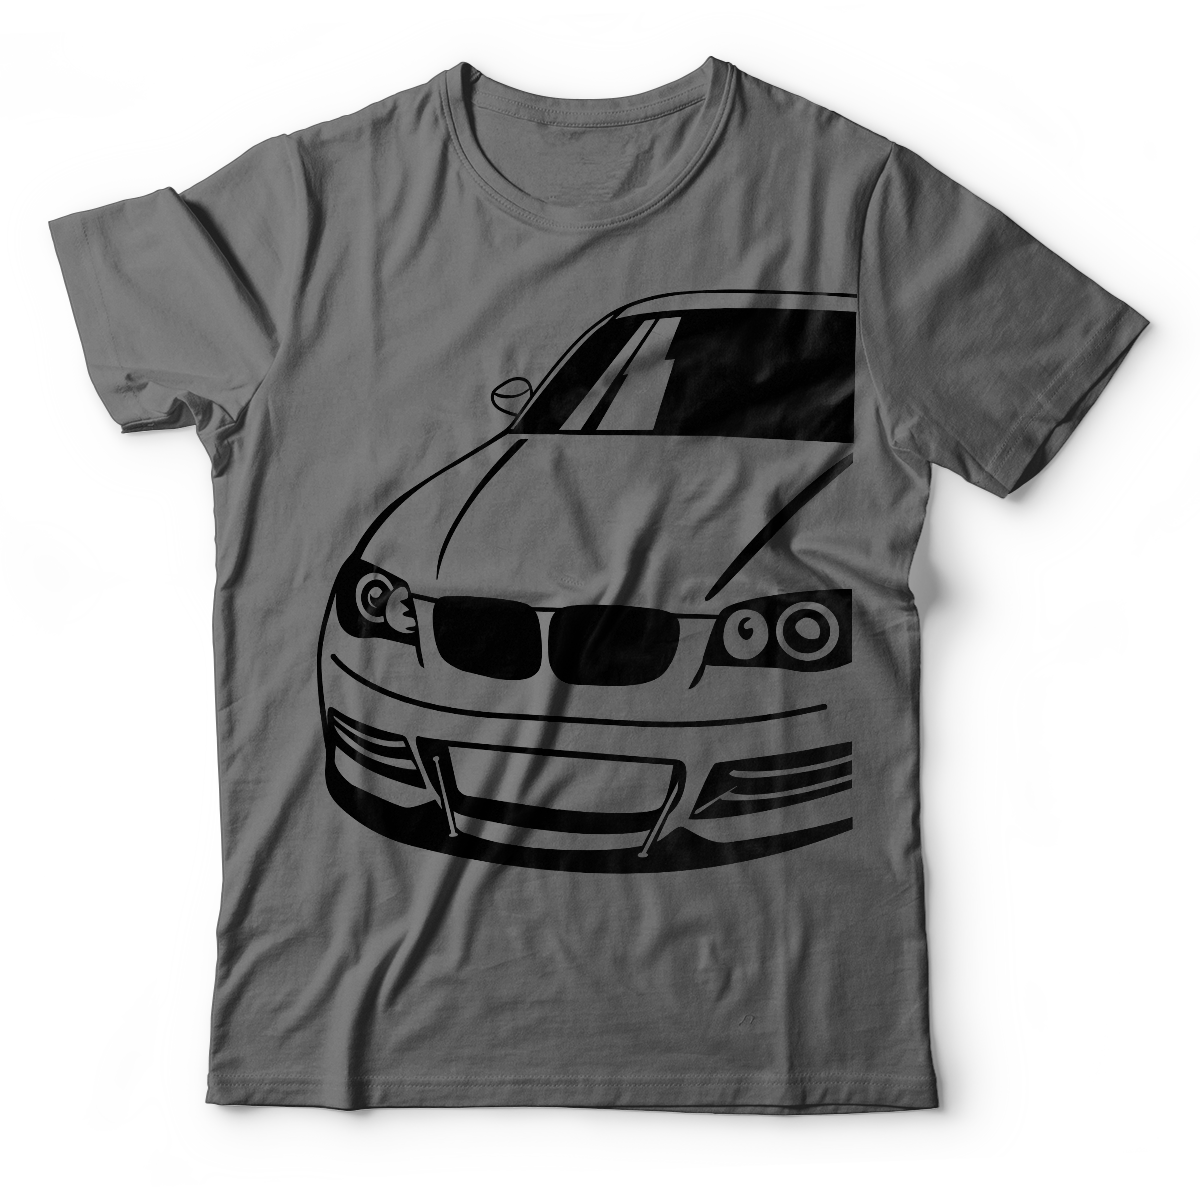 The 1 Series Shirt - Gray